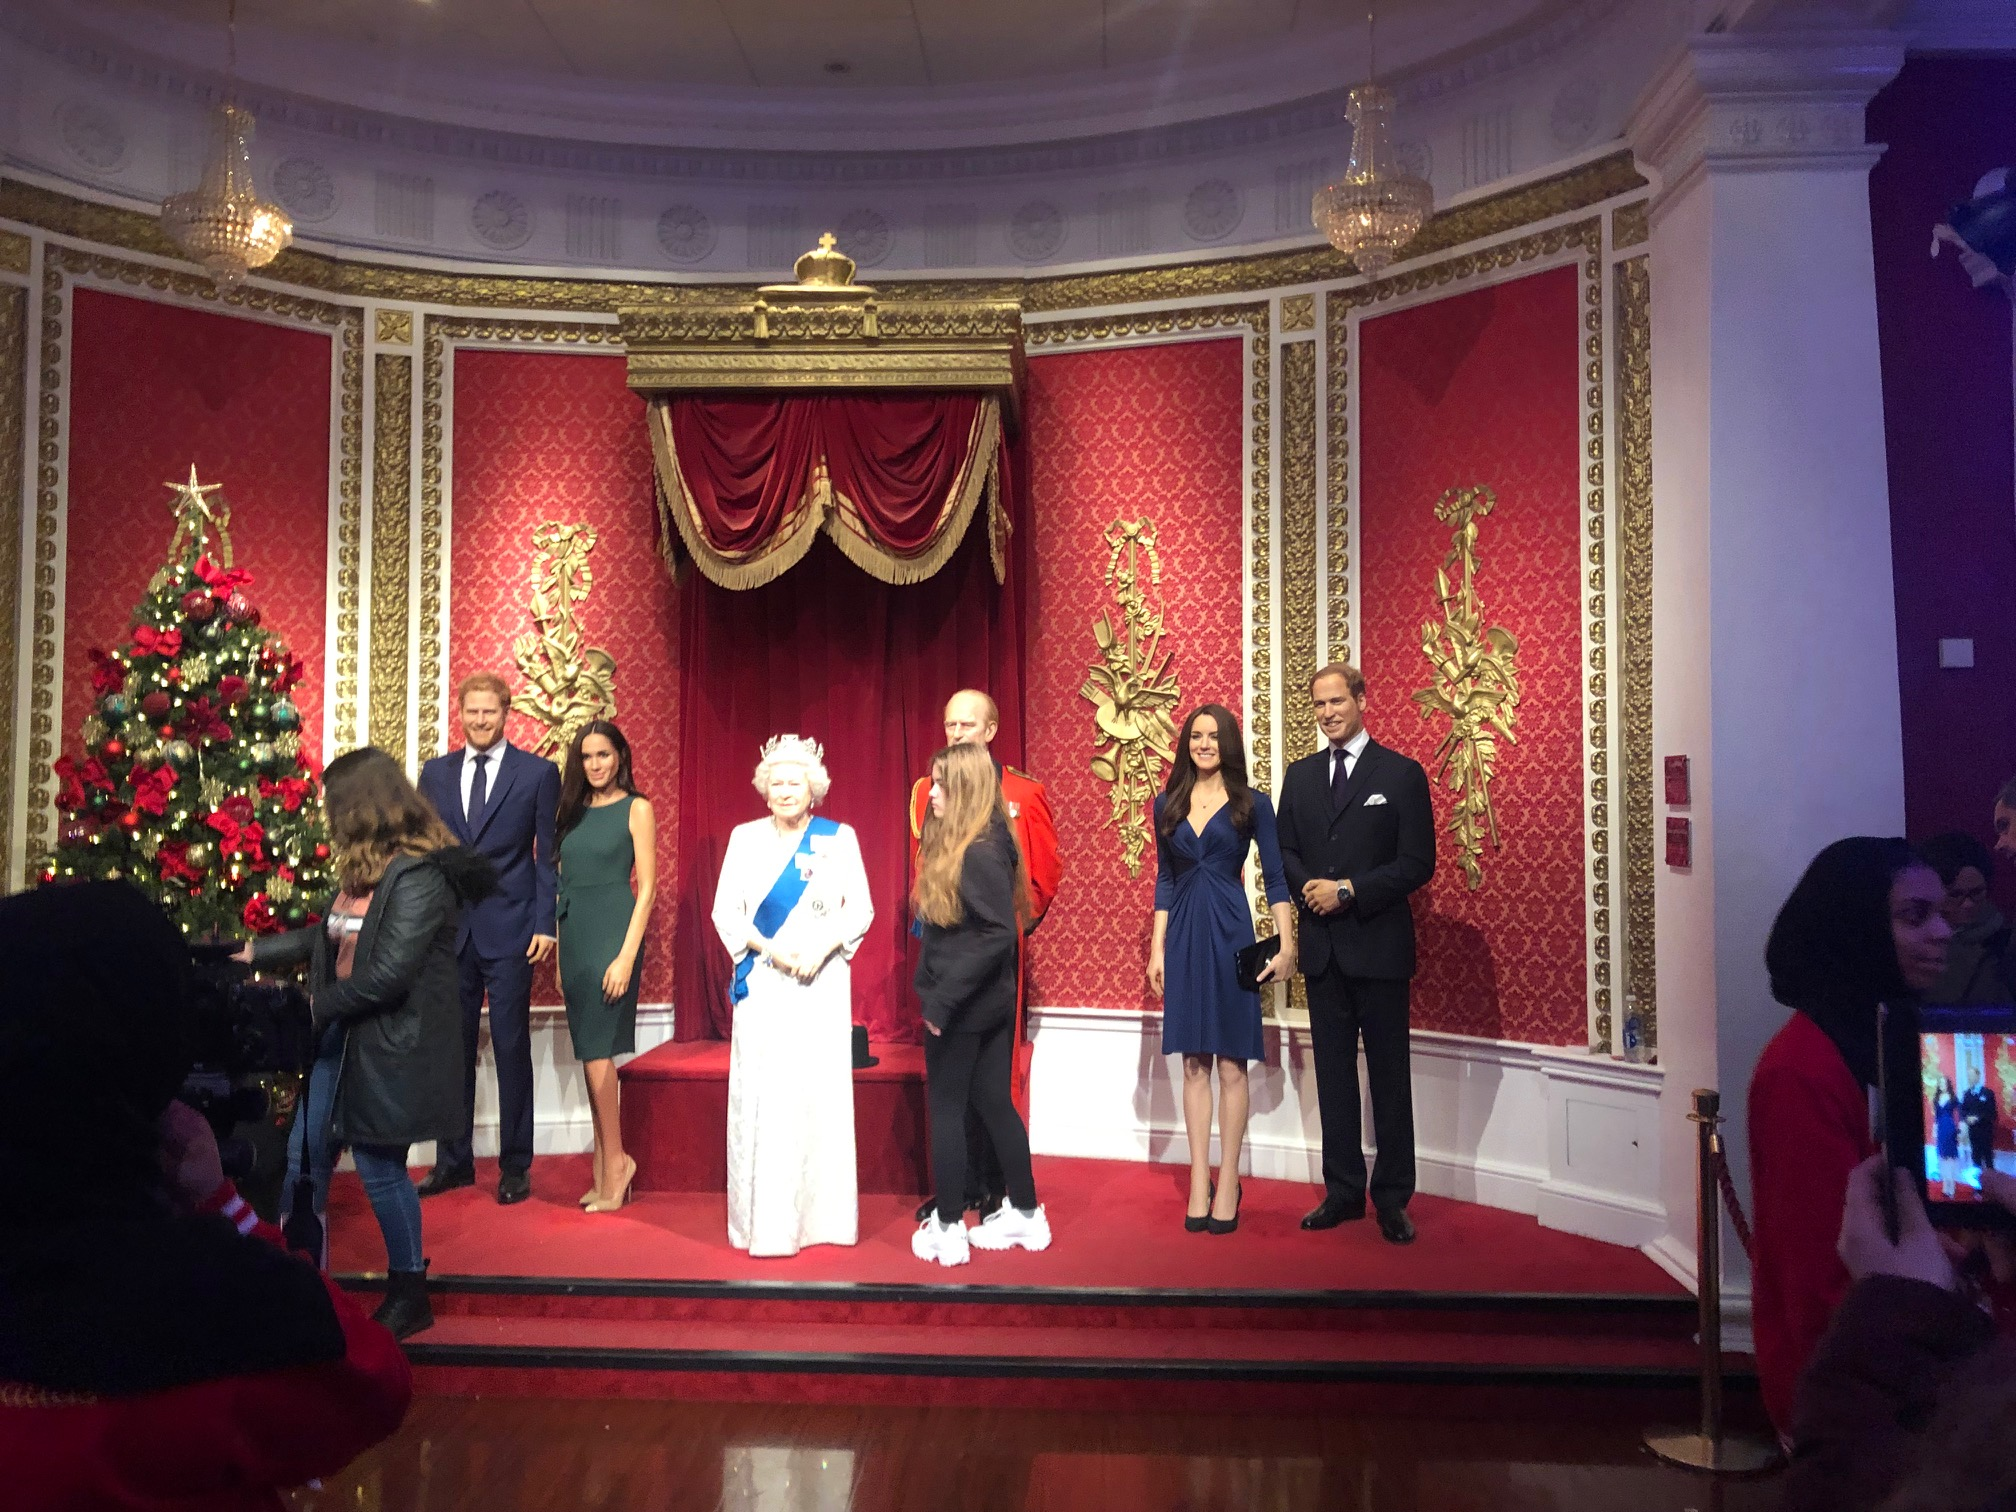 Royal Family Wax Statue at Tussauds